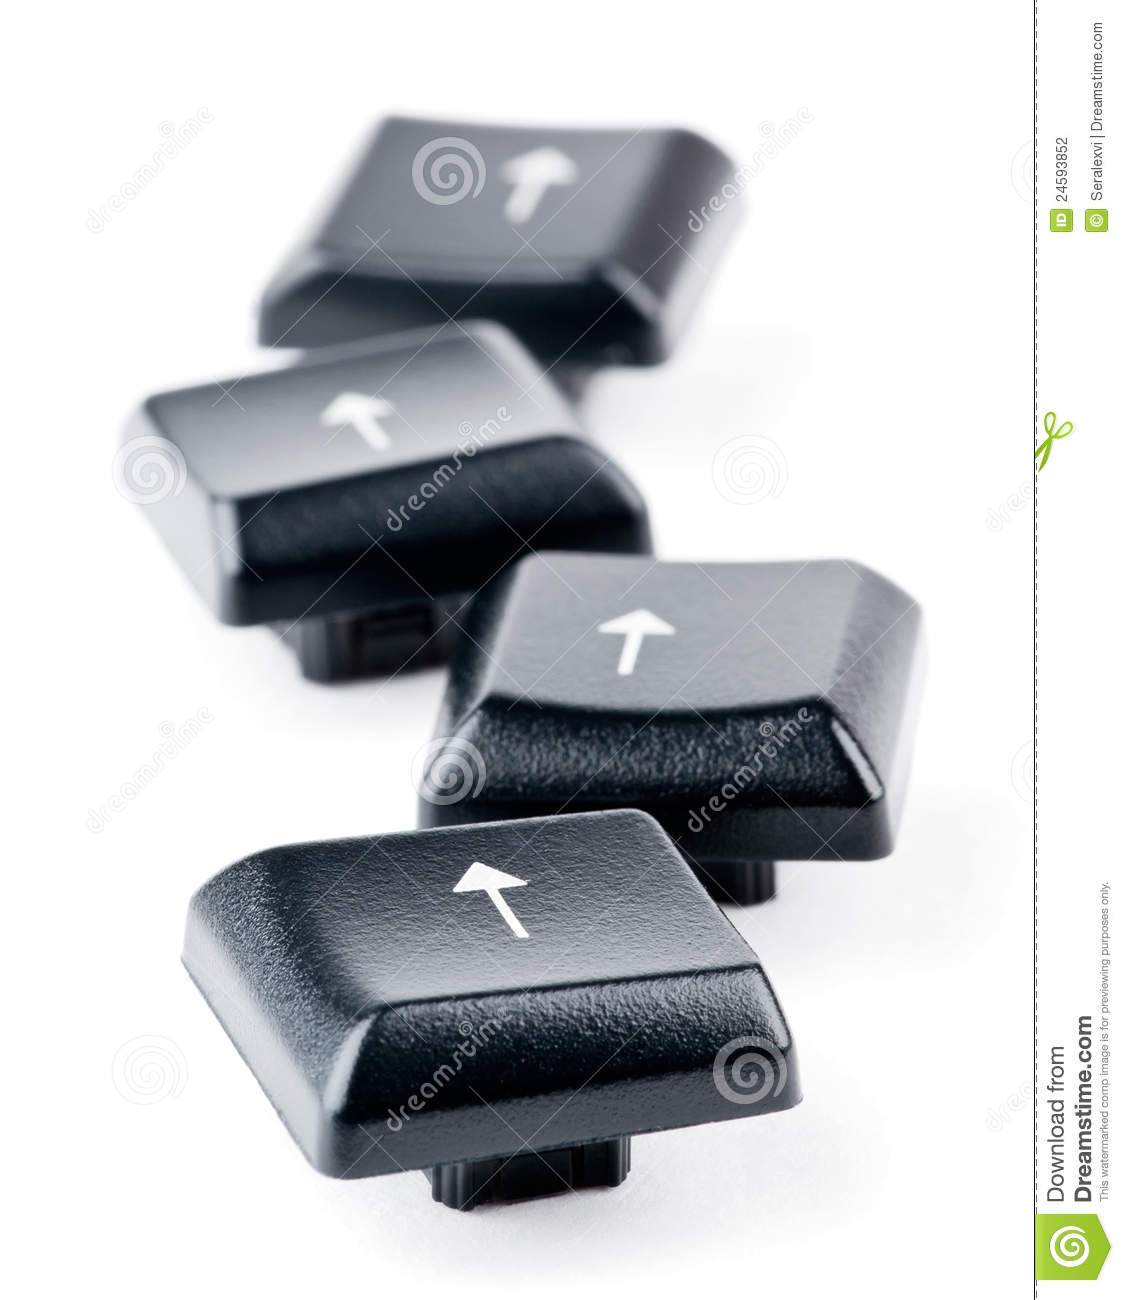 how to fix keyboard arrow keys